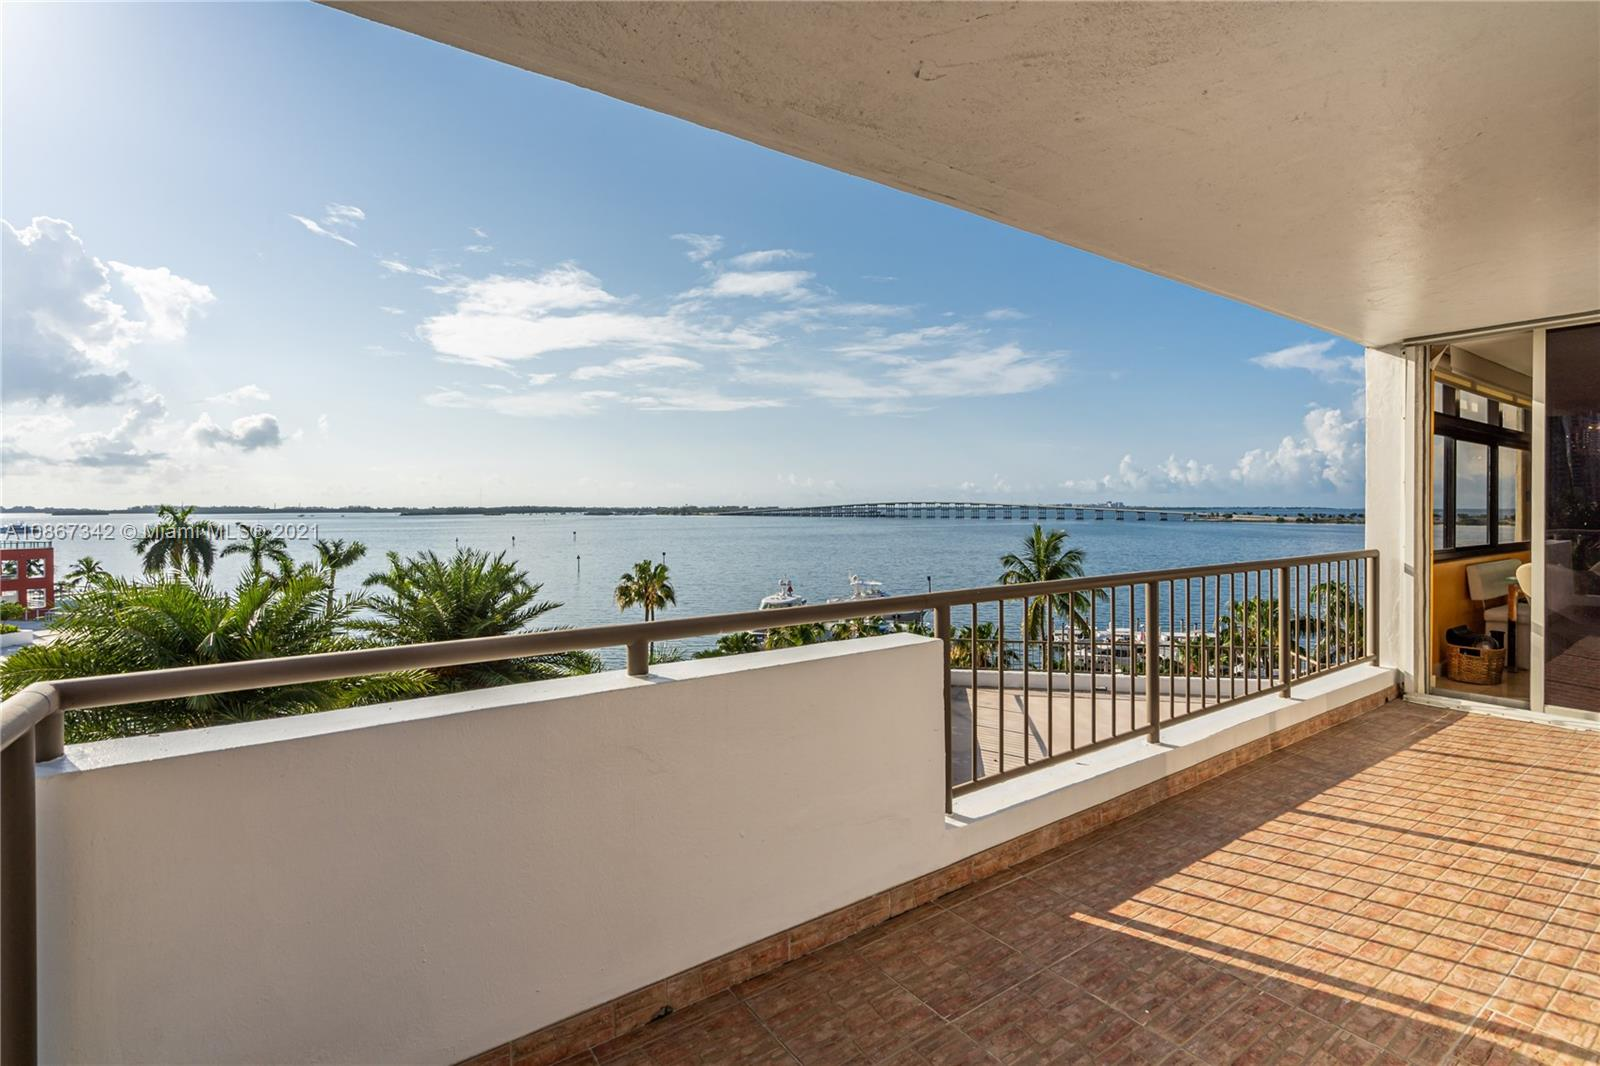 Amazing 3 Bedroom / 4.5 Bath unit at Villa Regina. Separate Master Suite with his/her bathrooms and walk-in closets. Separate Laundry Room. Over 3,000 sq ft plus almost 900 sq ft of balcony. Amenities include 24 hour concierge and security, BBQ area, extra large party room, pool and jacuzzi, guarded gate, fully equipped gym with sauna and steam room, children playroom. Walking distance to St Jude Church, Publix, Mary Brickell Village and Metrorail.